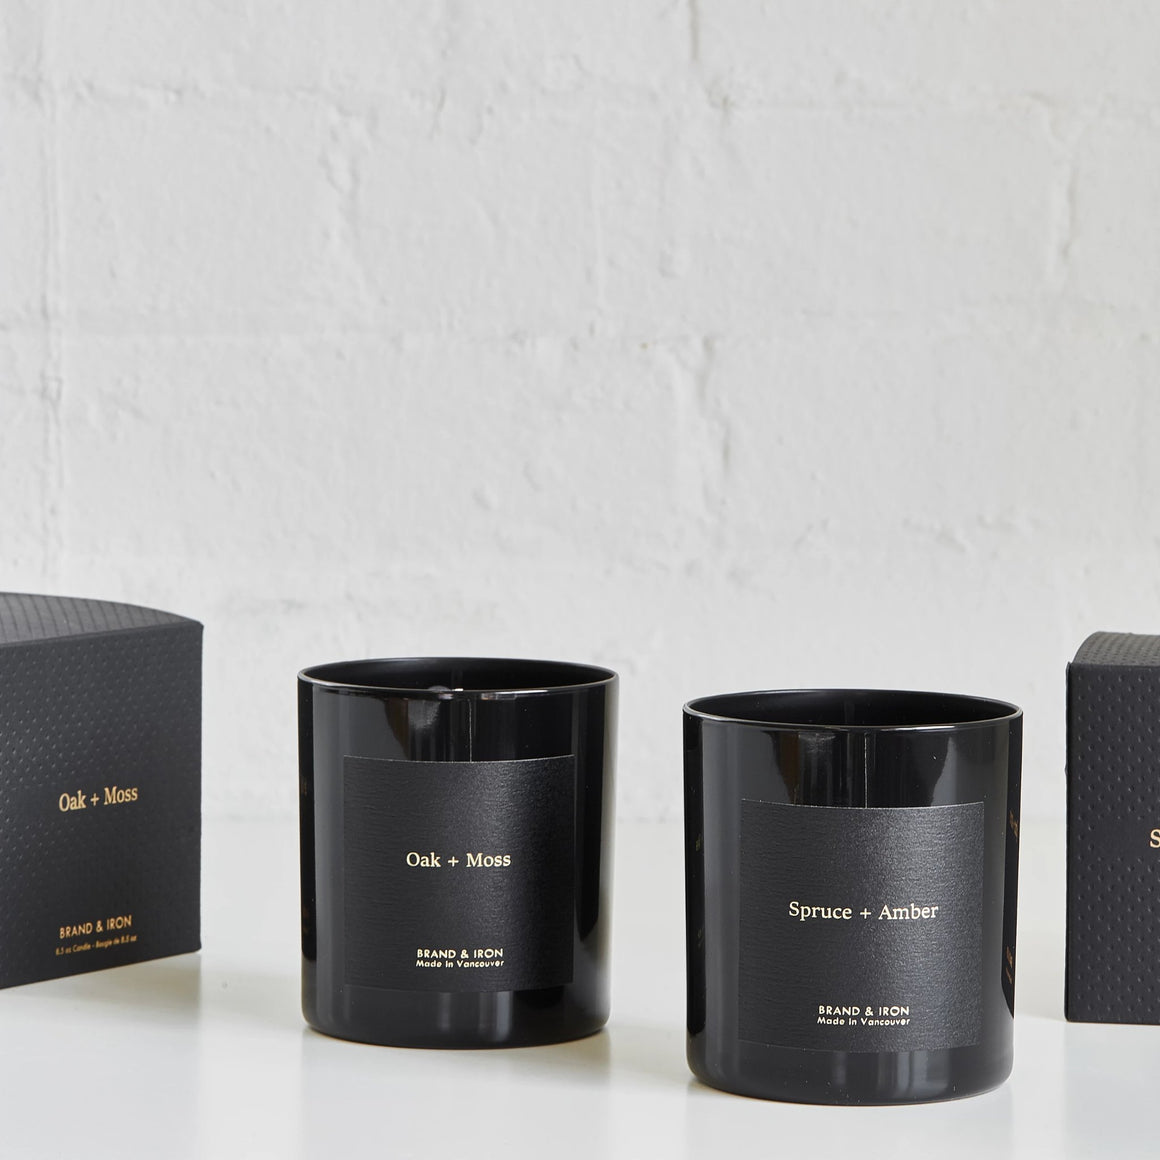 Spruce + Amber Candle by Brand & Iron